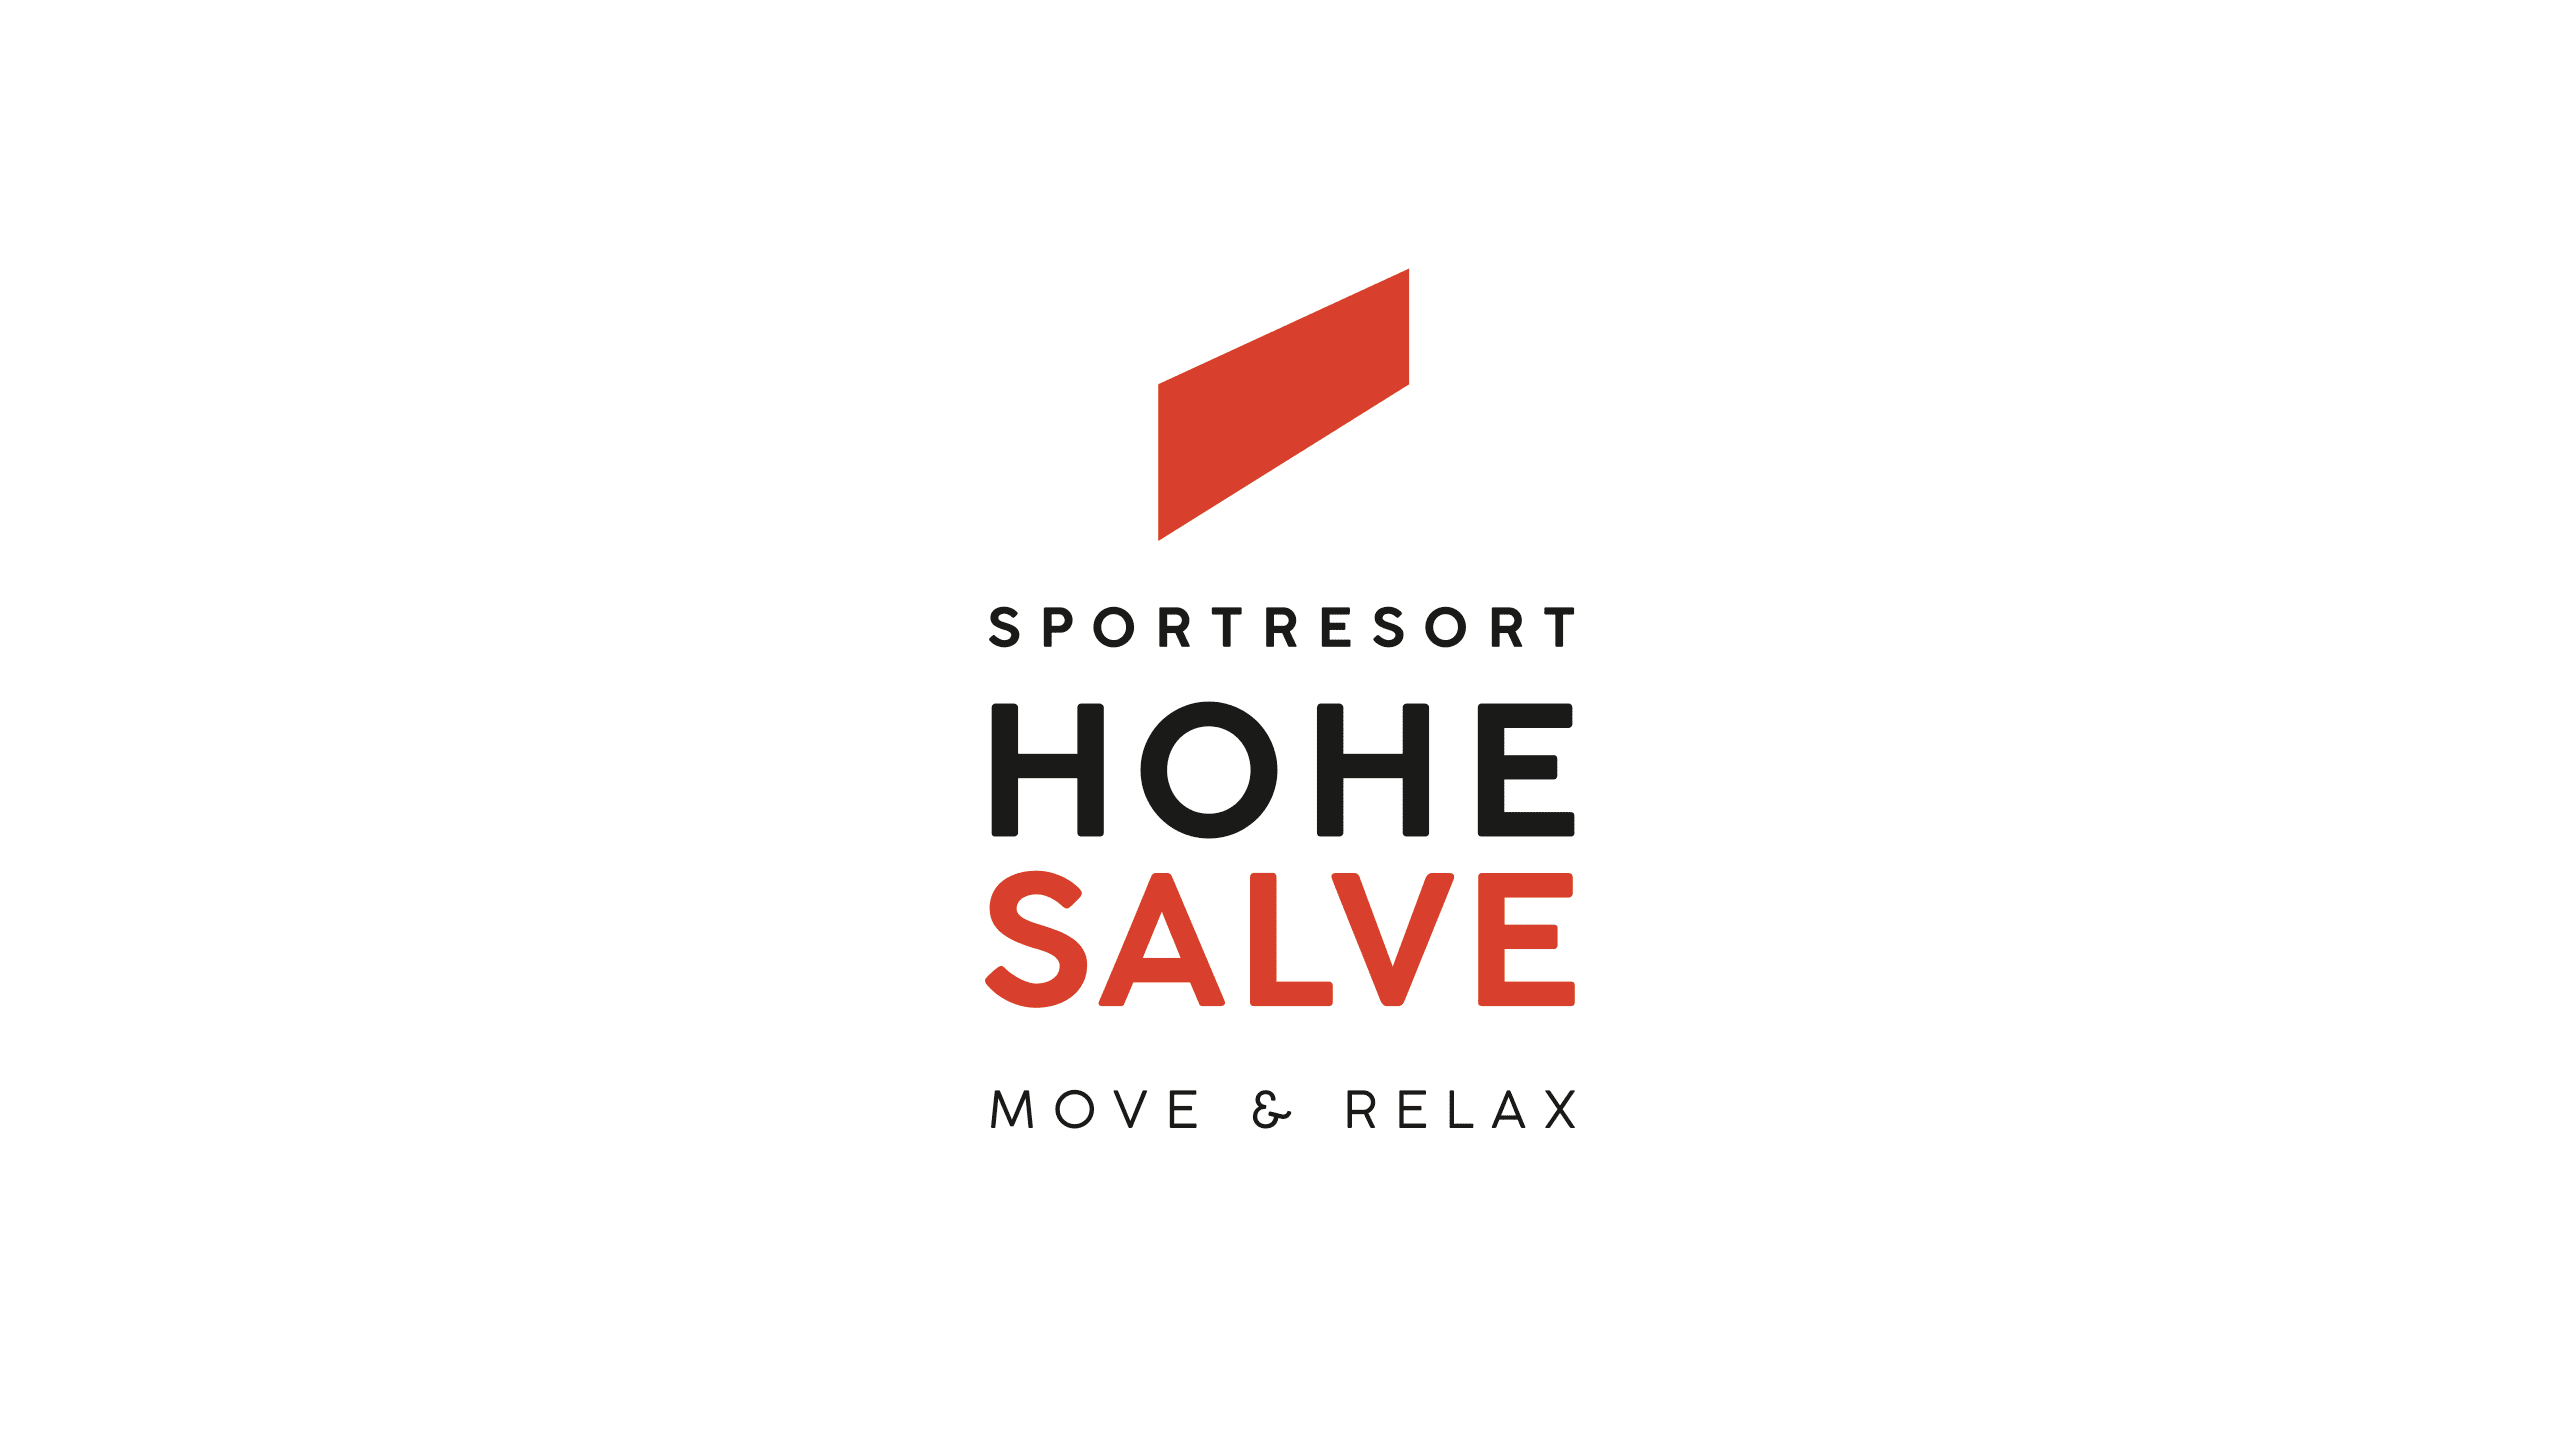 Hohe Salve 02 Logodesign Corporate Design